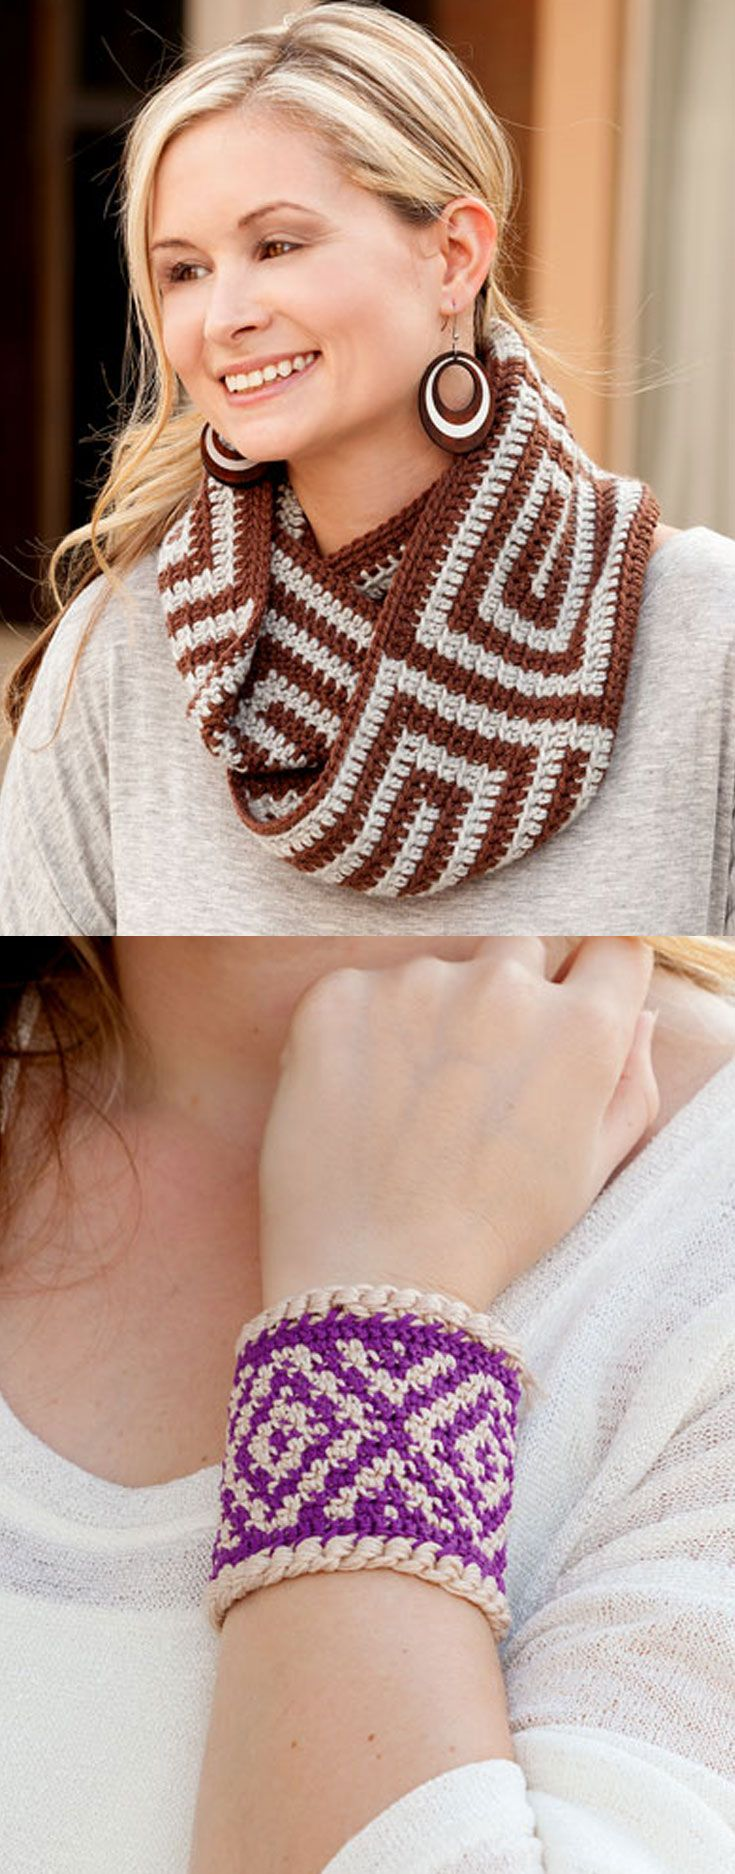 Spiraling cowl and diamond bracelet, in Learn to Tapestry Crochet book, that includes basic steps on how to carry and wrap yarn, change colors, step-by-step photos, written instructions and charts. A great learn-to book! Also included are 6 projects perfect for a beginner.